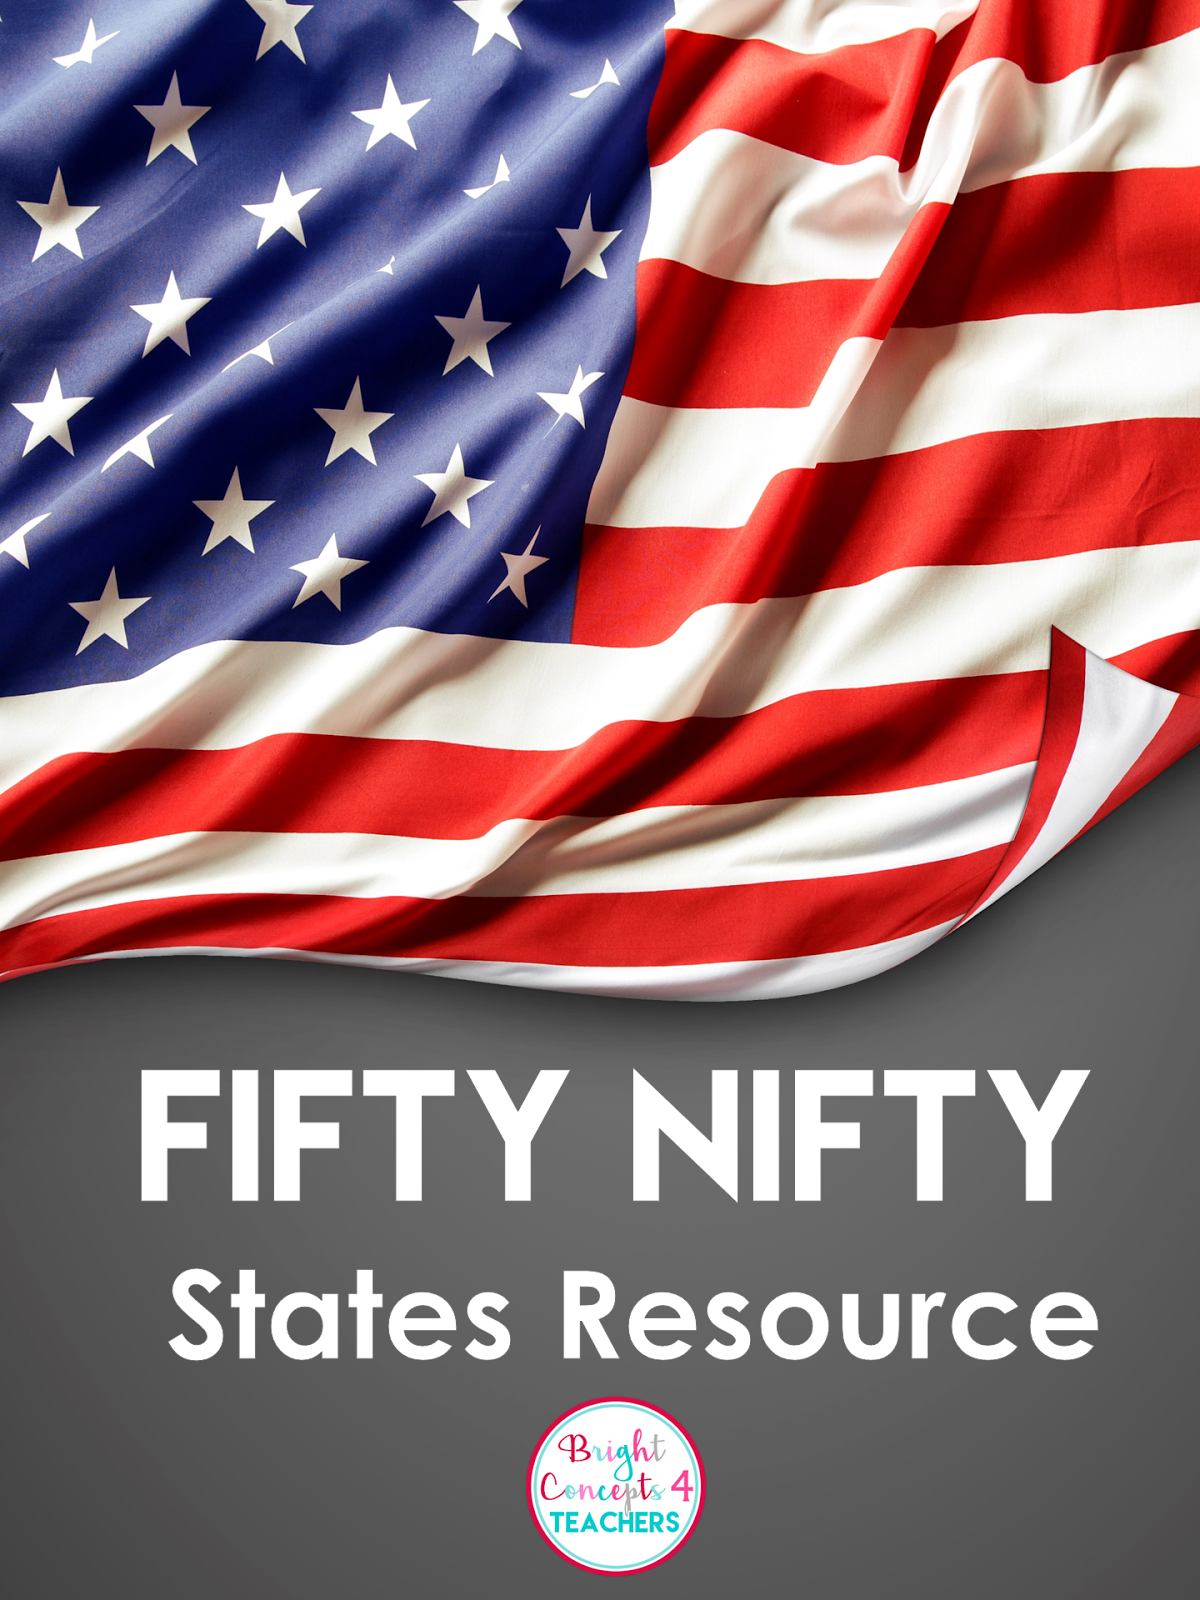 Fifty Nifty States Resource